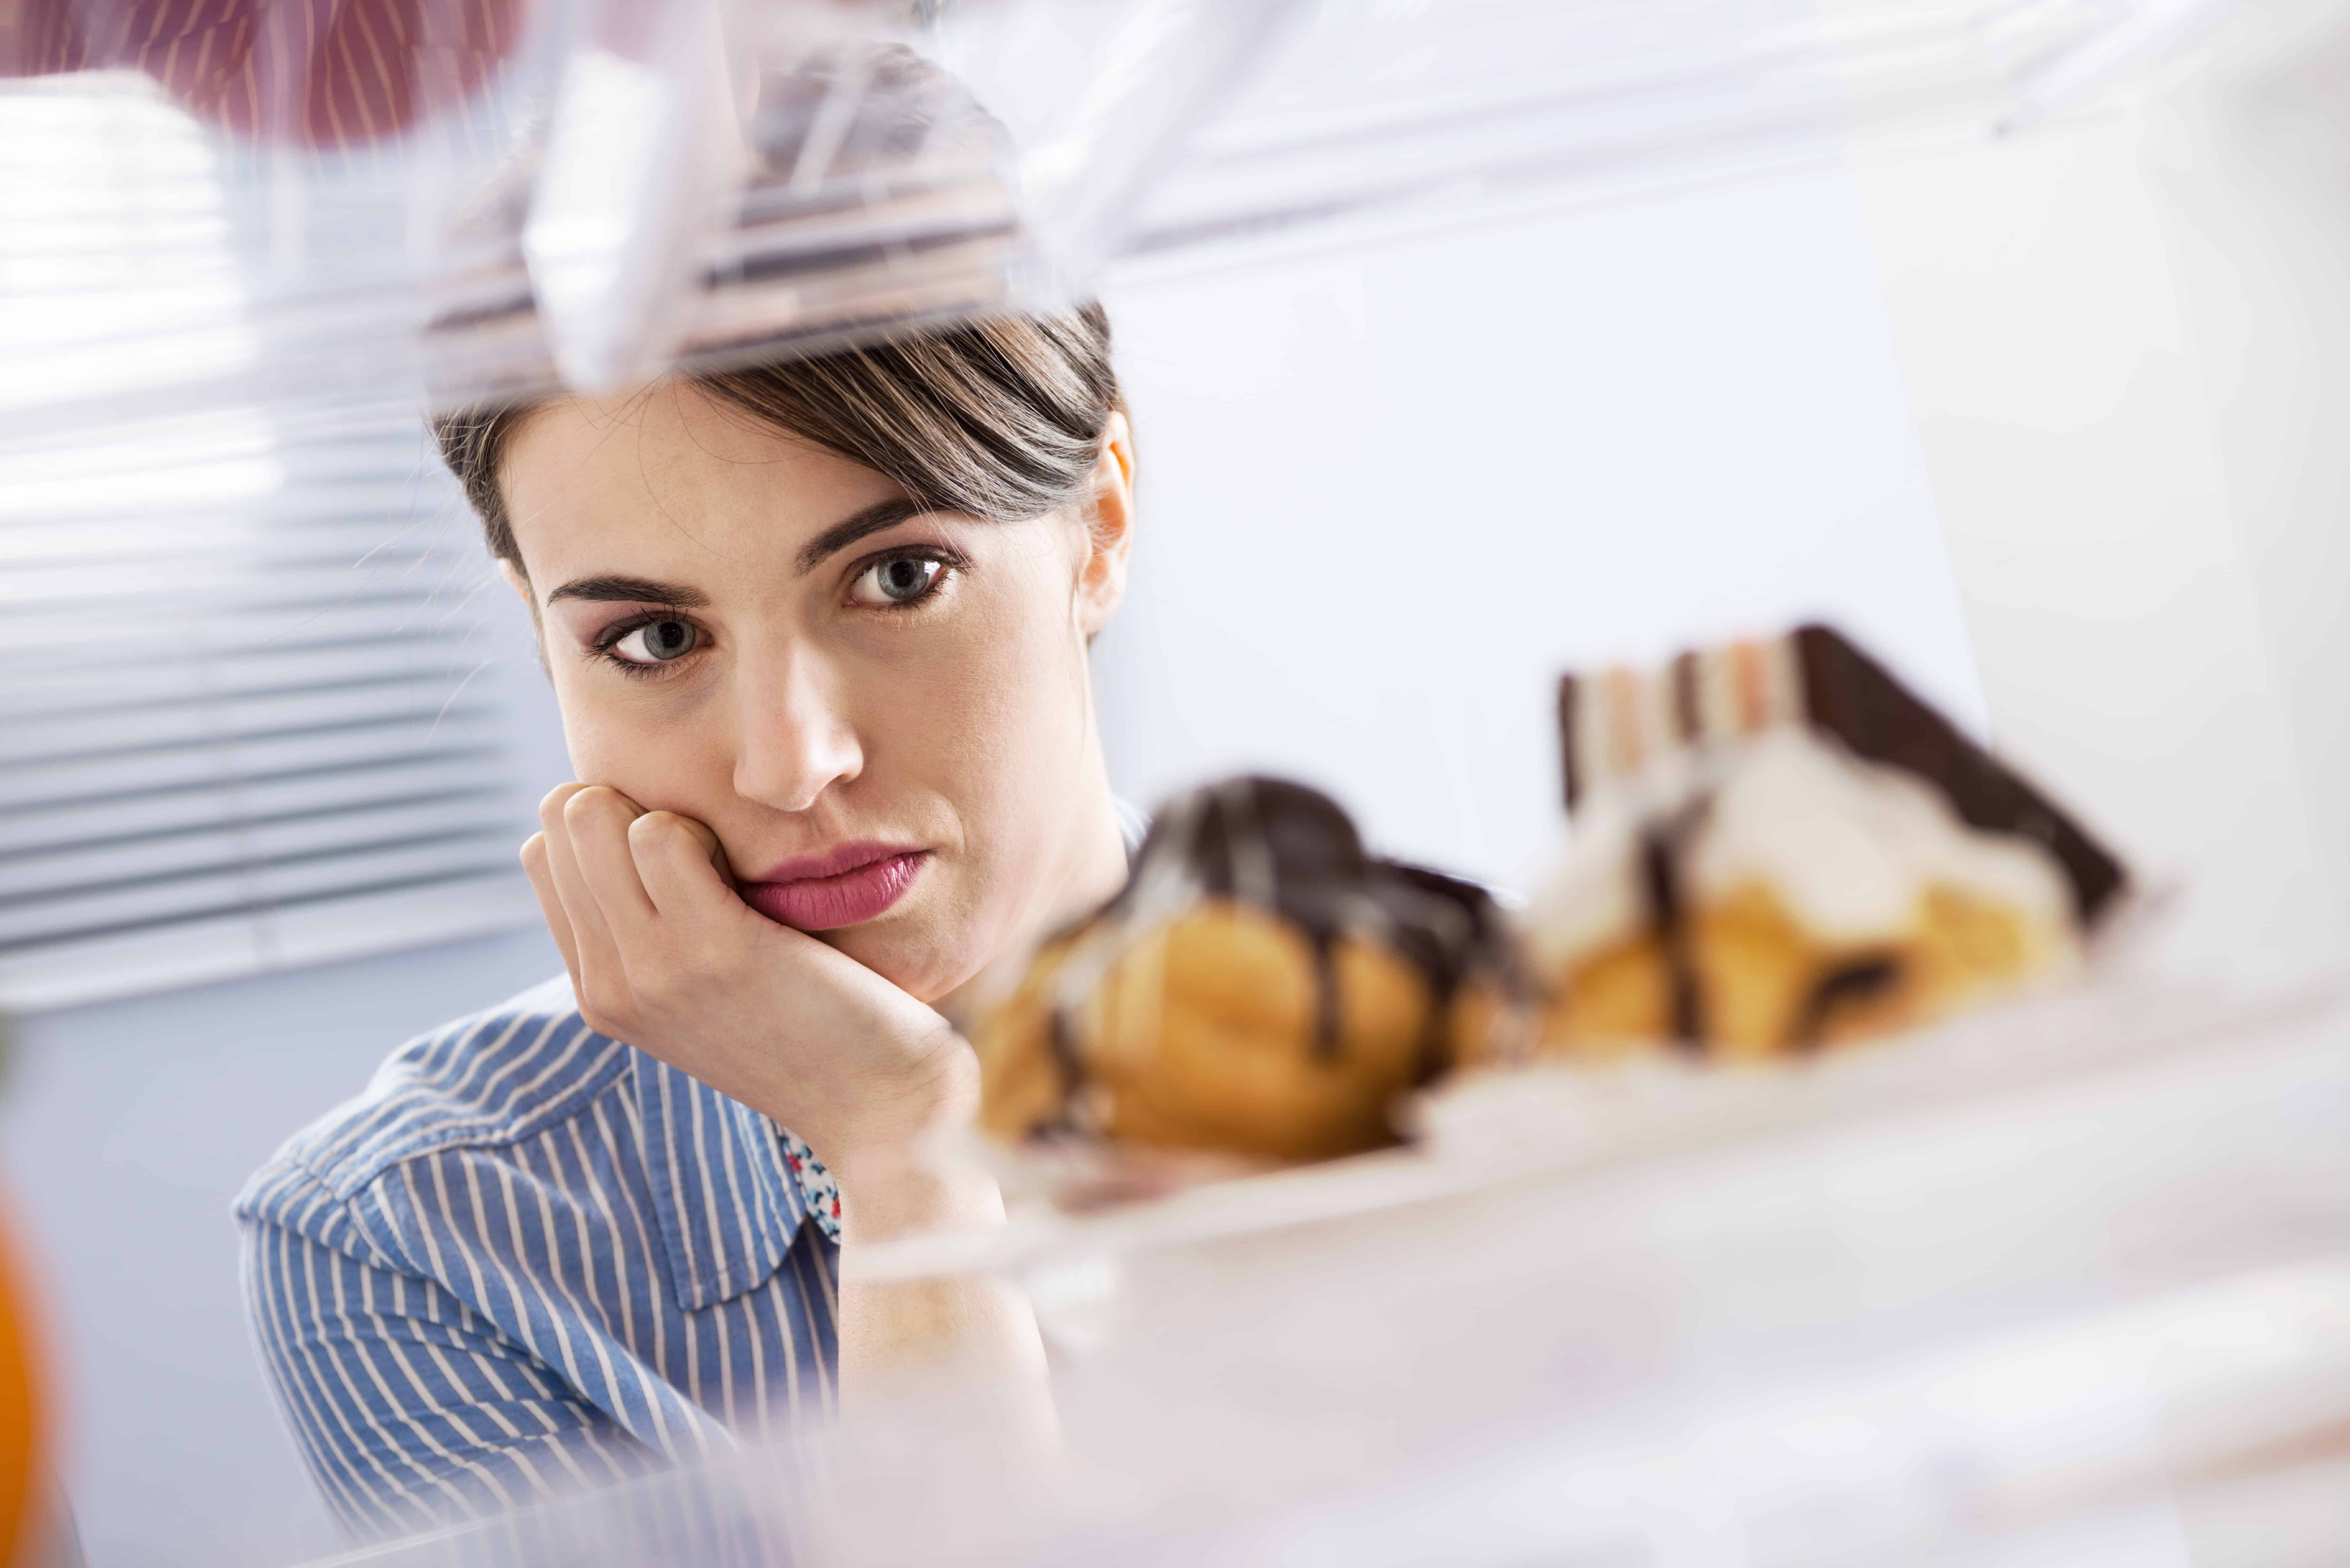 How To Get Rid Of Food Cravings And Hunger